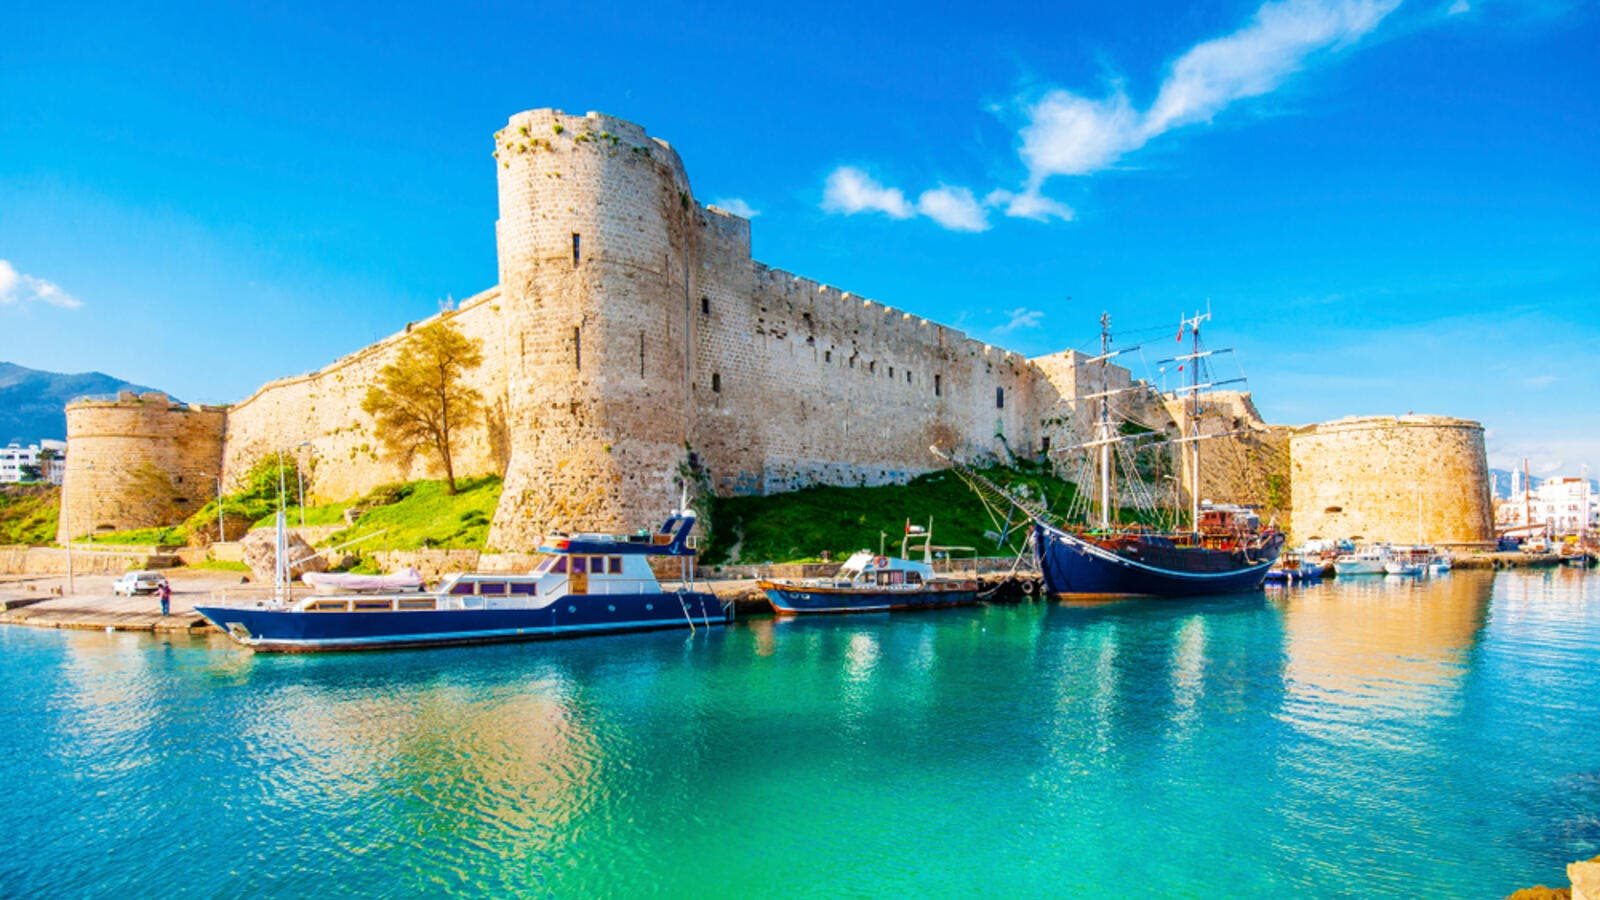 When Can I Travel to Cyprus? The Island Reopens from June